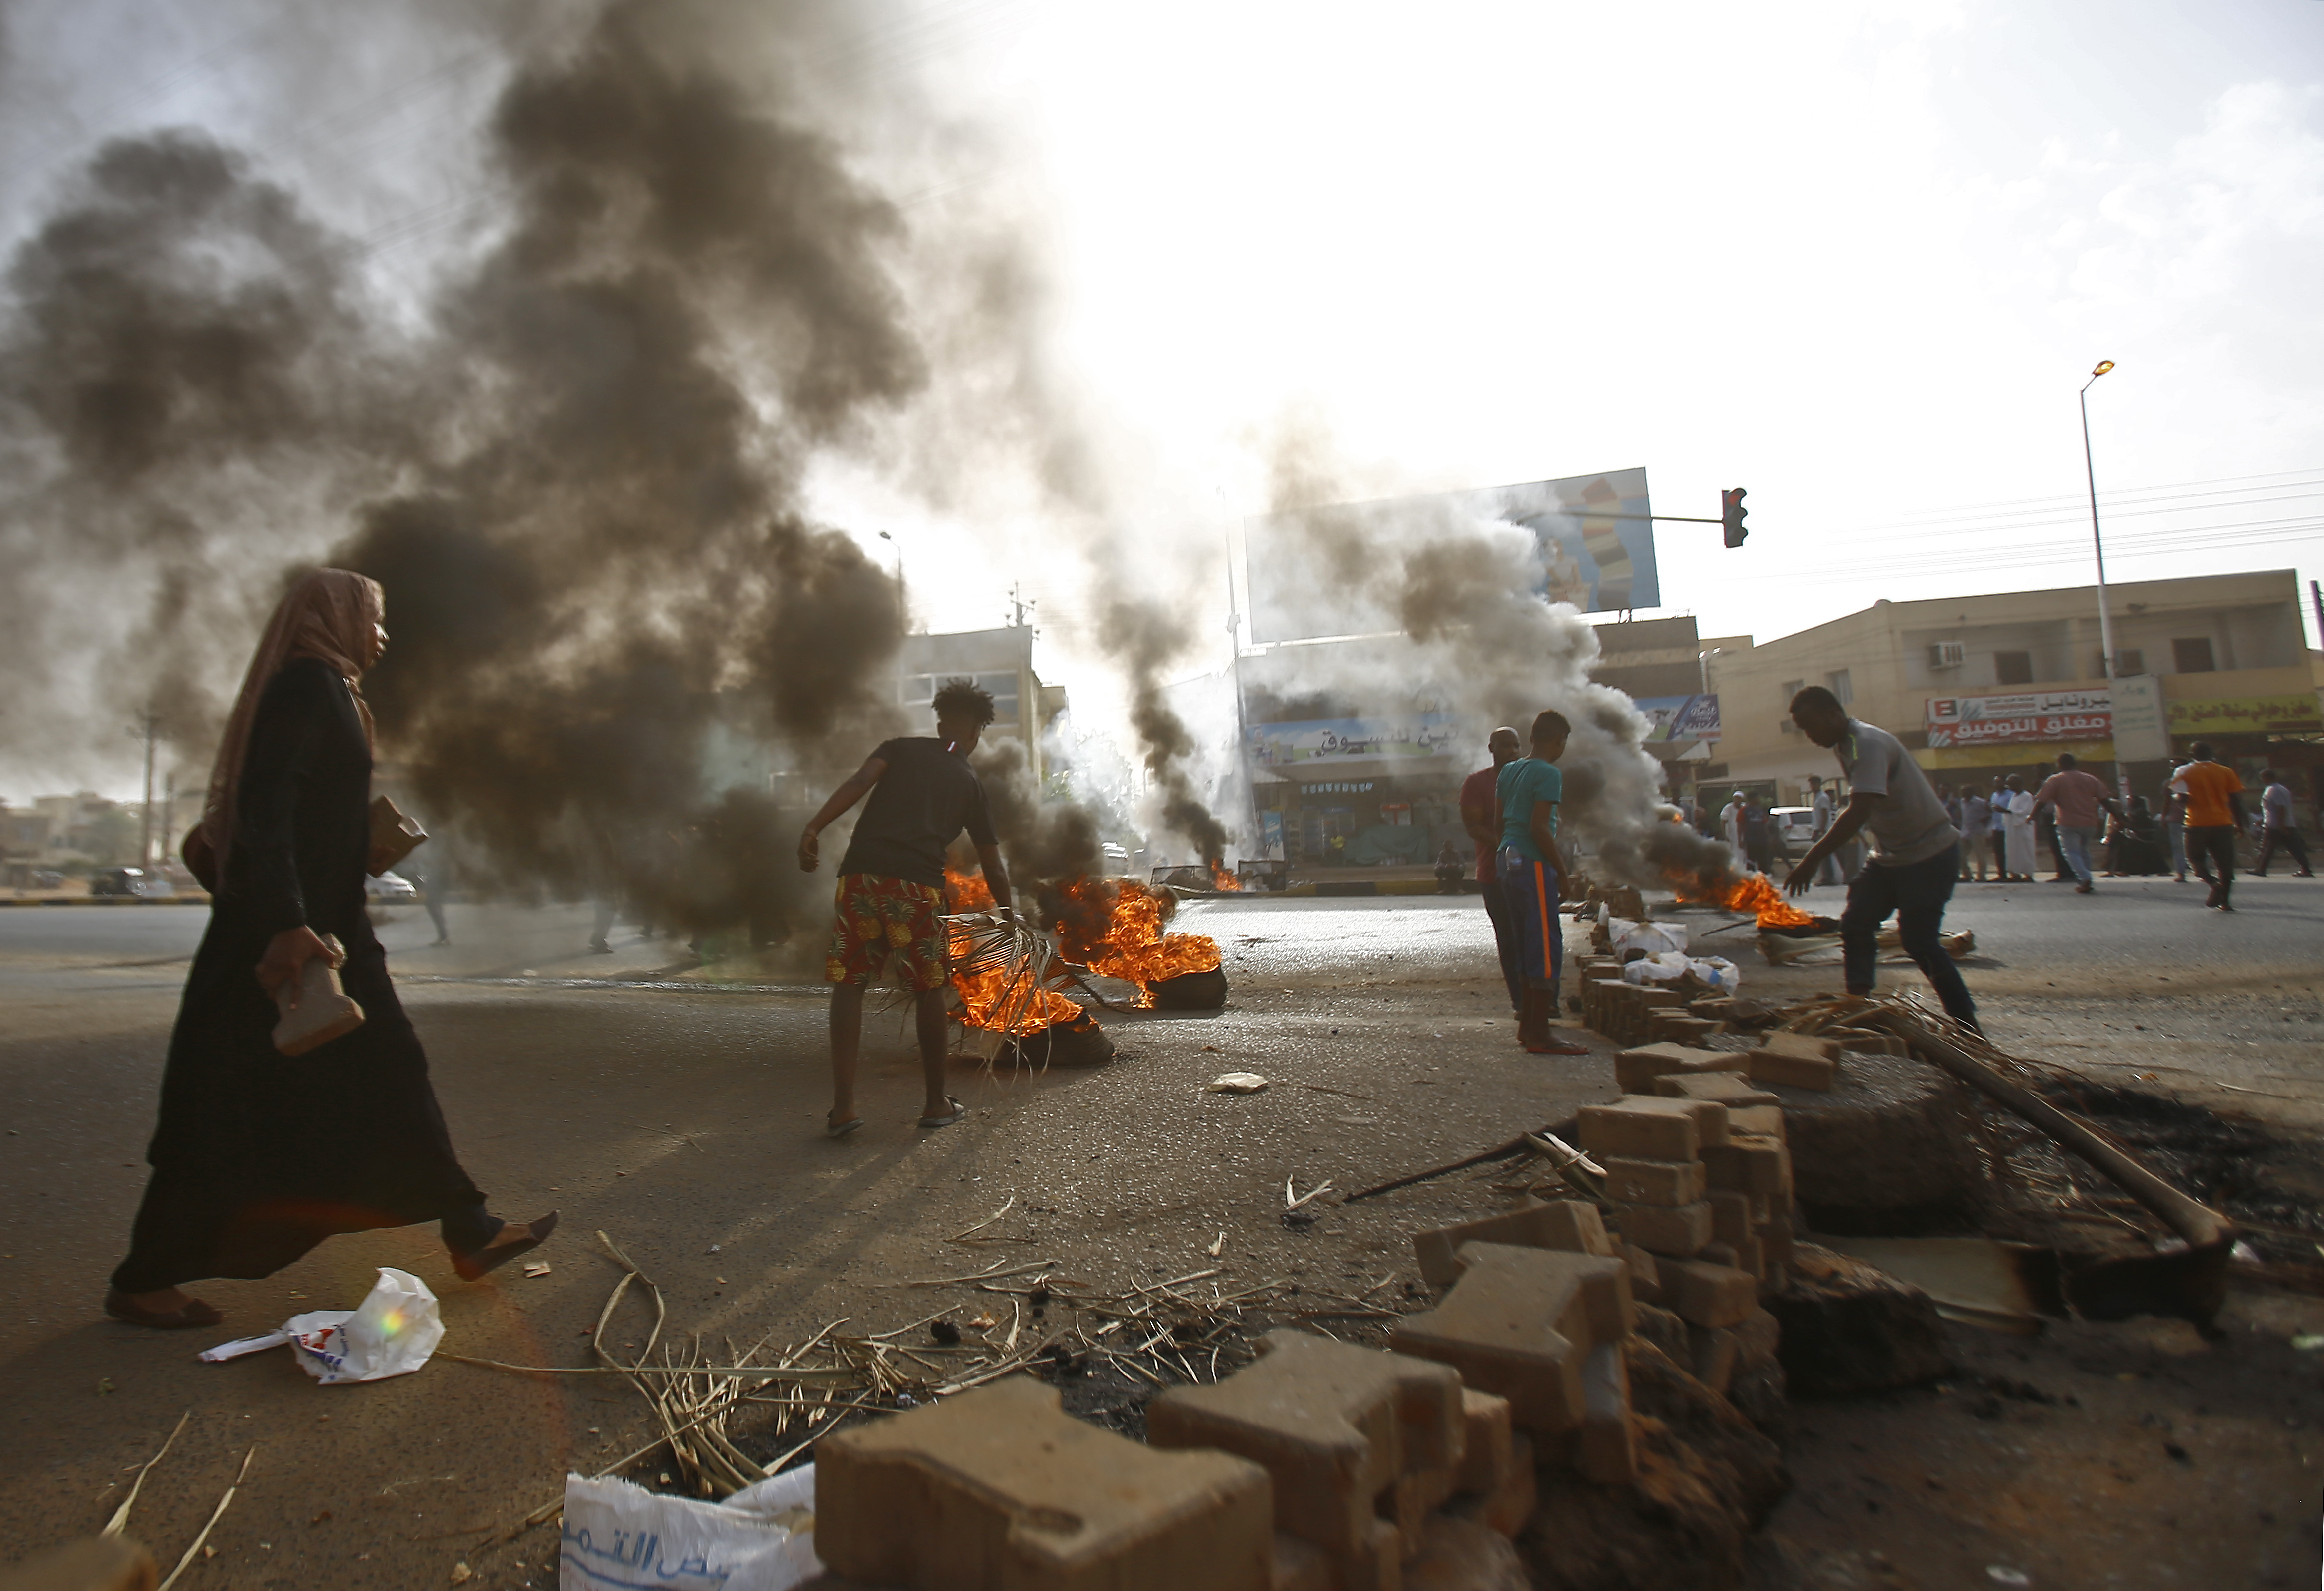 Sudanese protesters block Street 60 with burning tyres and pavers as military forces tried to disperse the sit-in outside Khartoum's army headquarters on June 3, 2019.